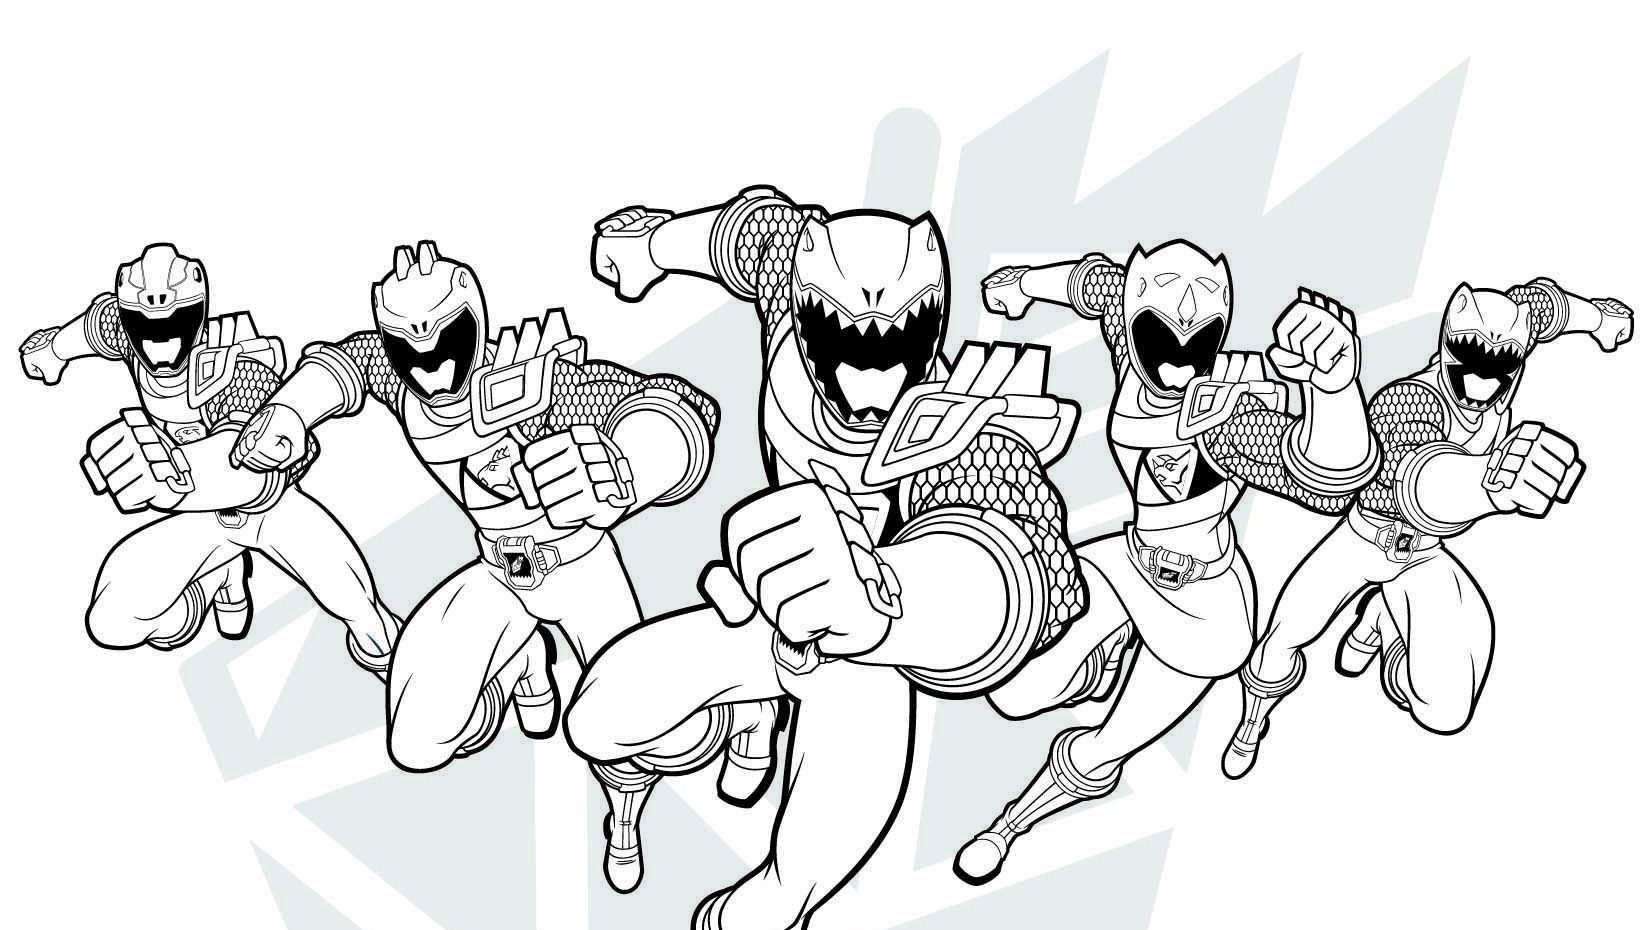 Pin On Power Ranger Coloring Pages And Videos